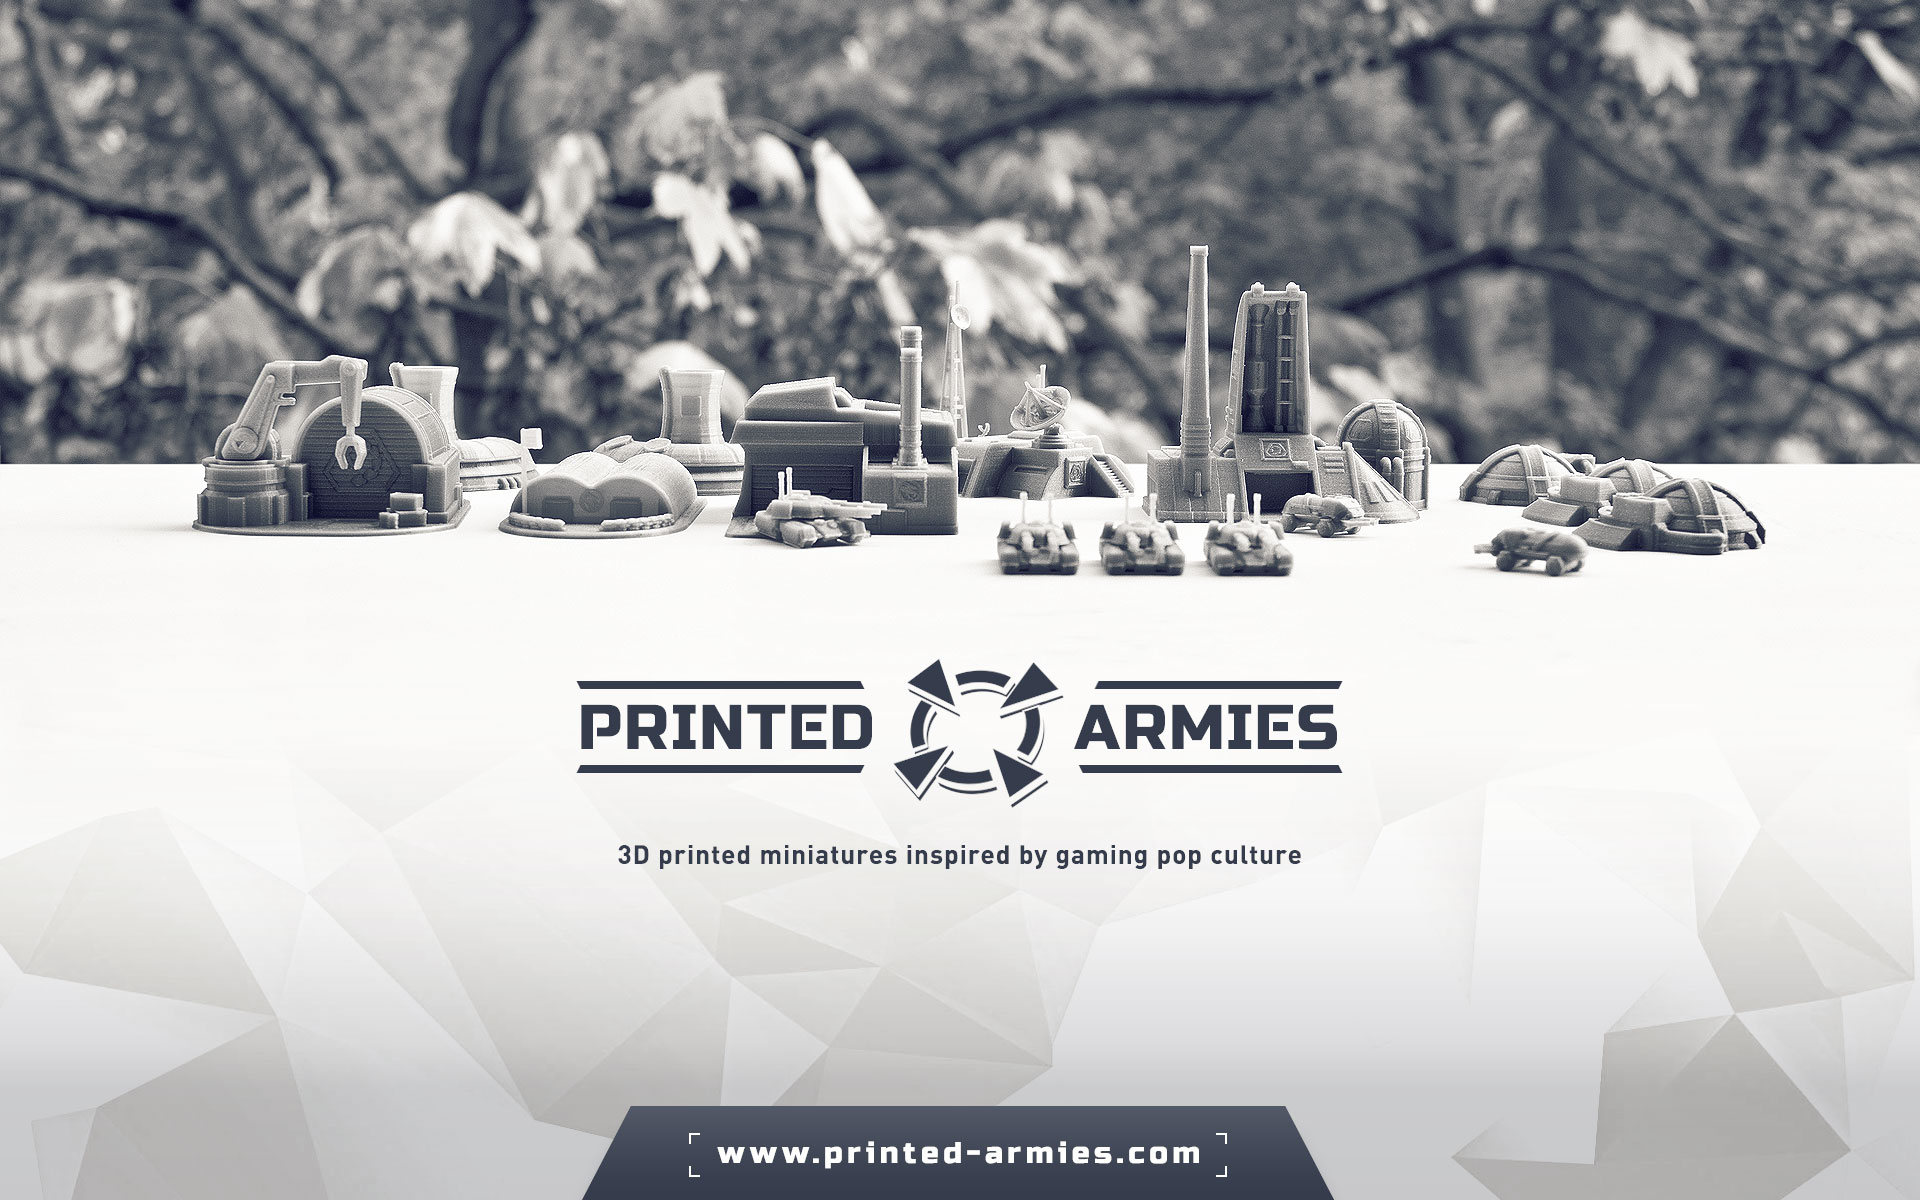 printed-armies-wallpaper01